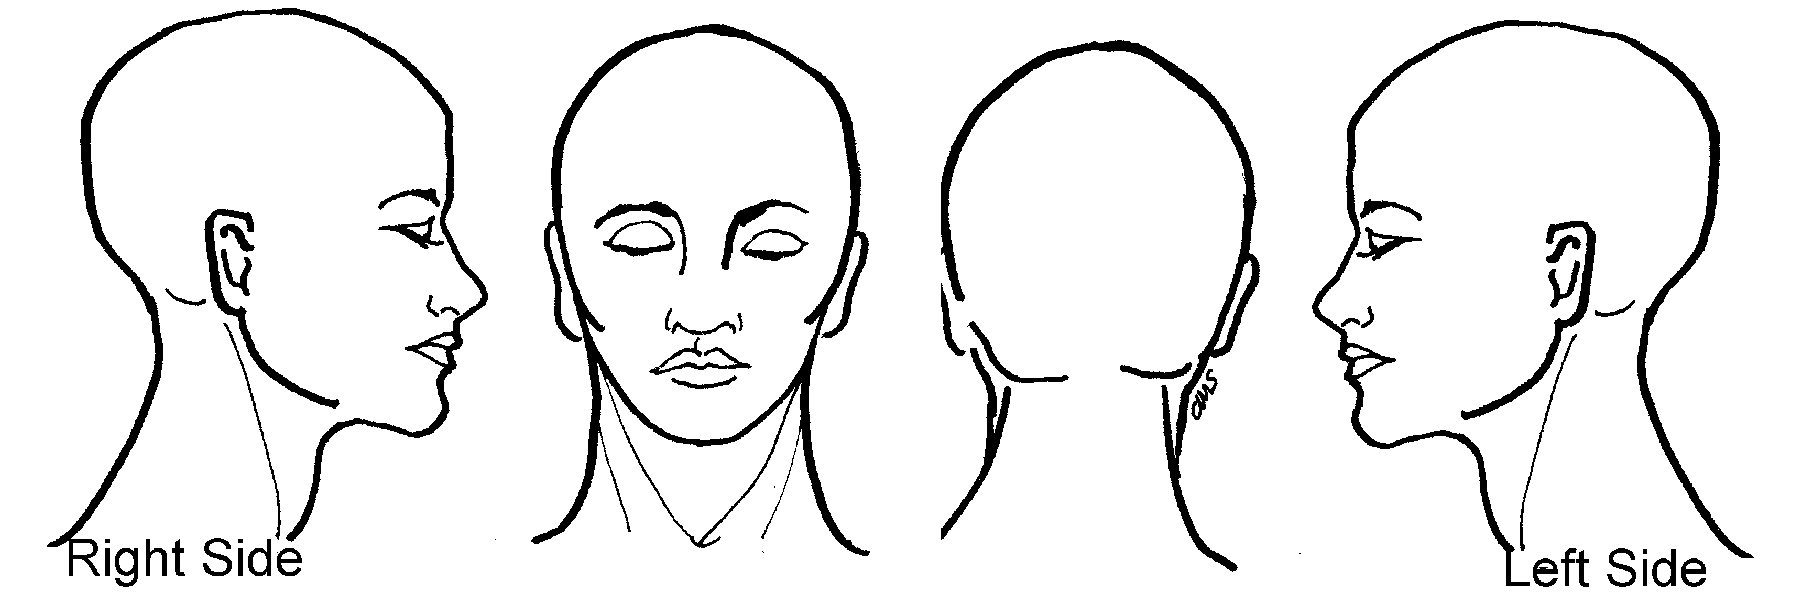 Head Pain Template